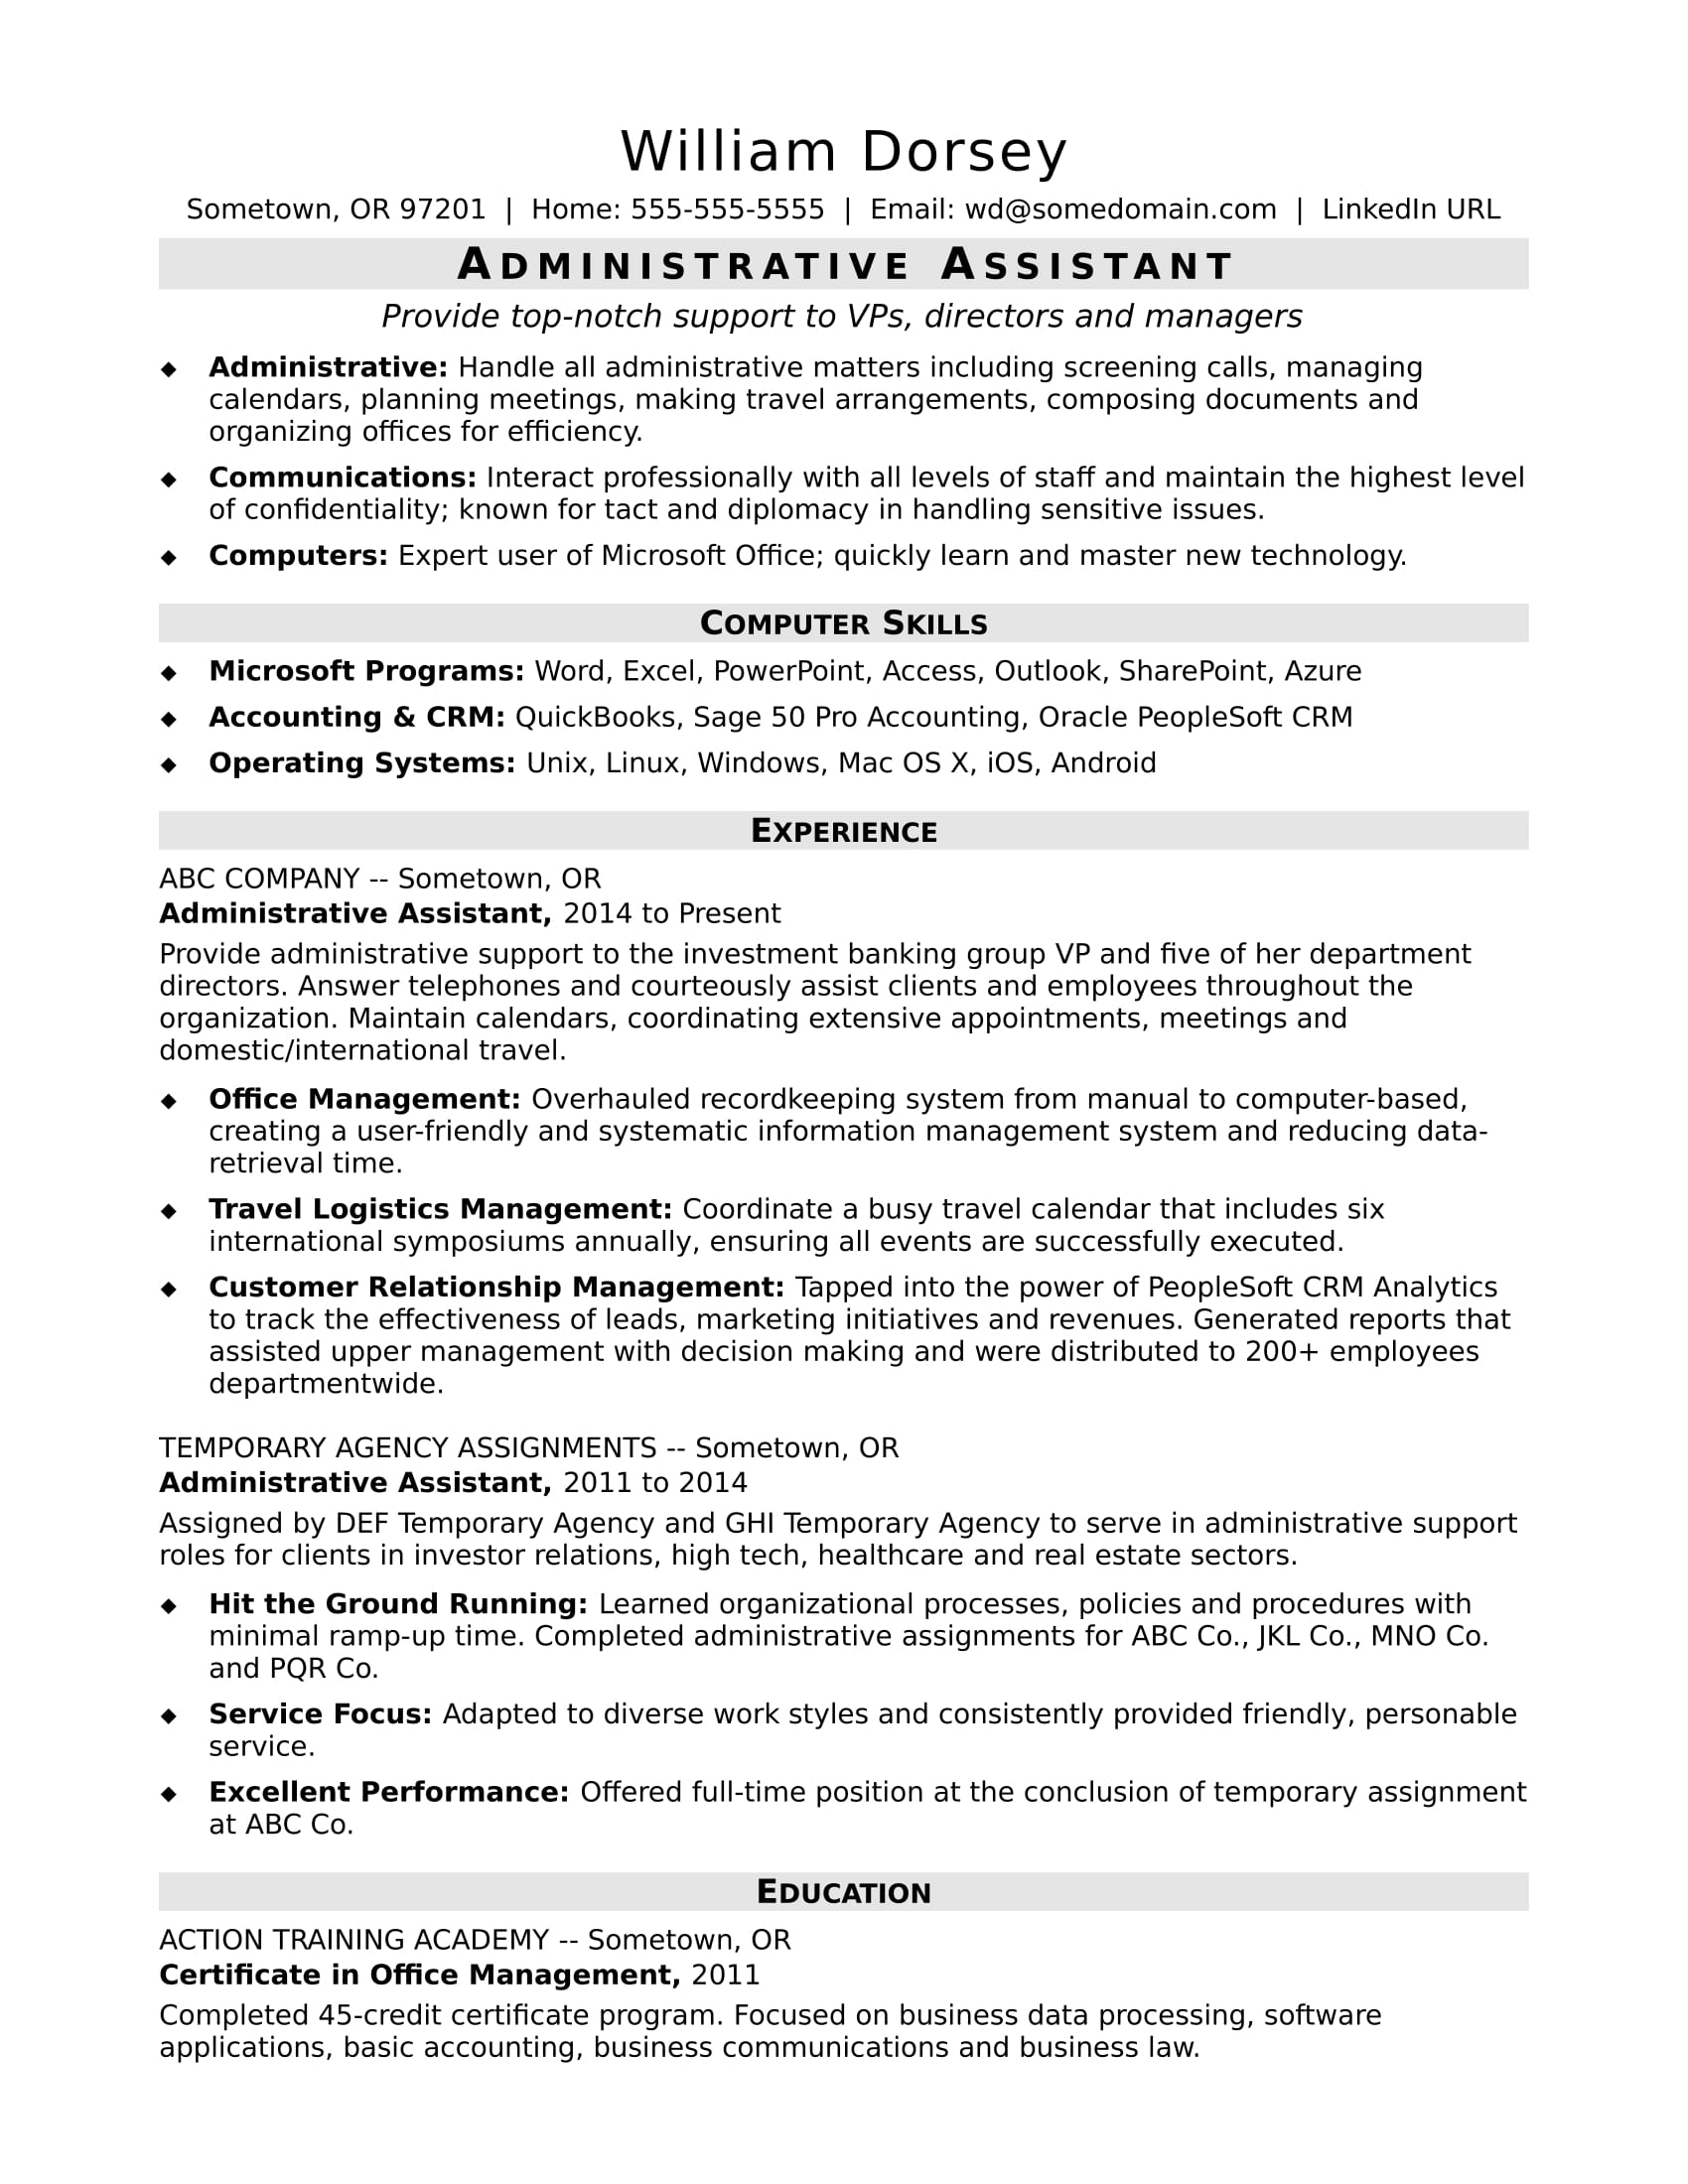 Sample Resume For A Midlevel Administrative Assistant  Administrative Assistant Duties Resume